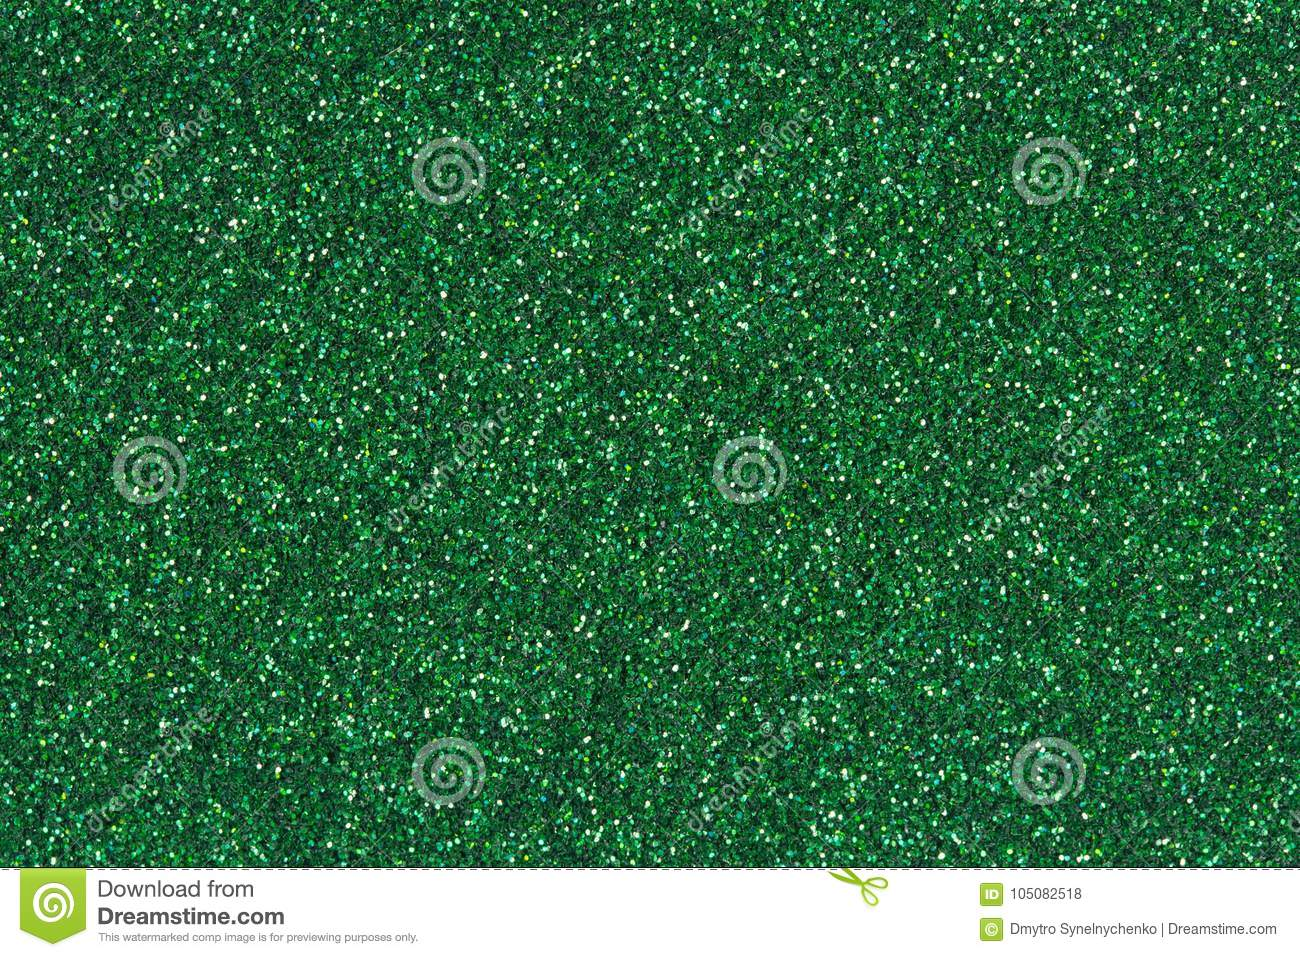 Emerald green glitter texture or background.